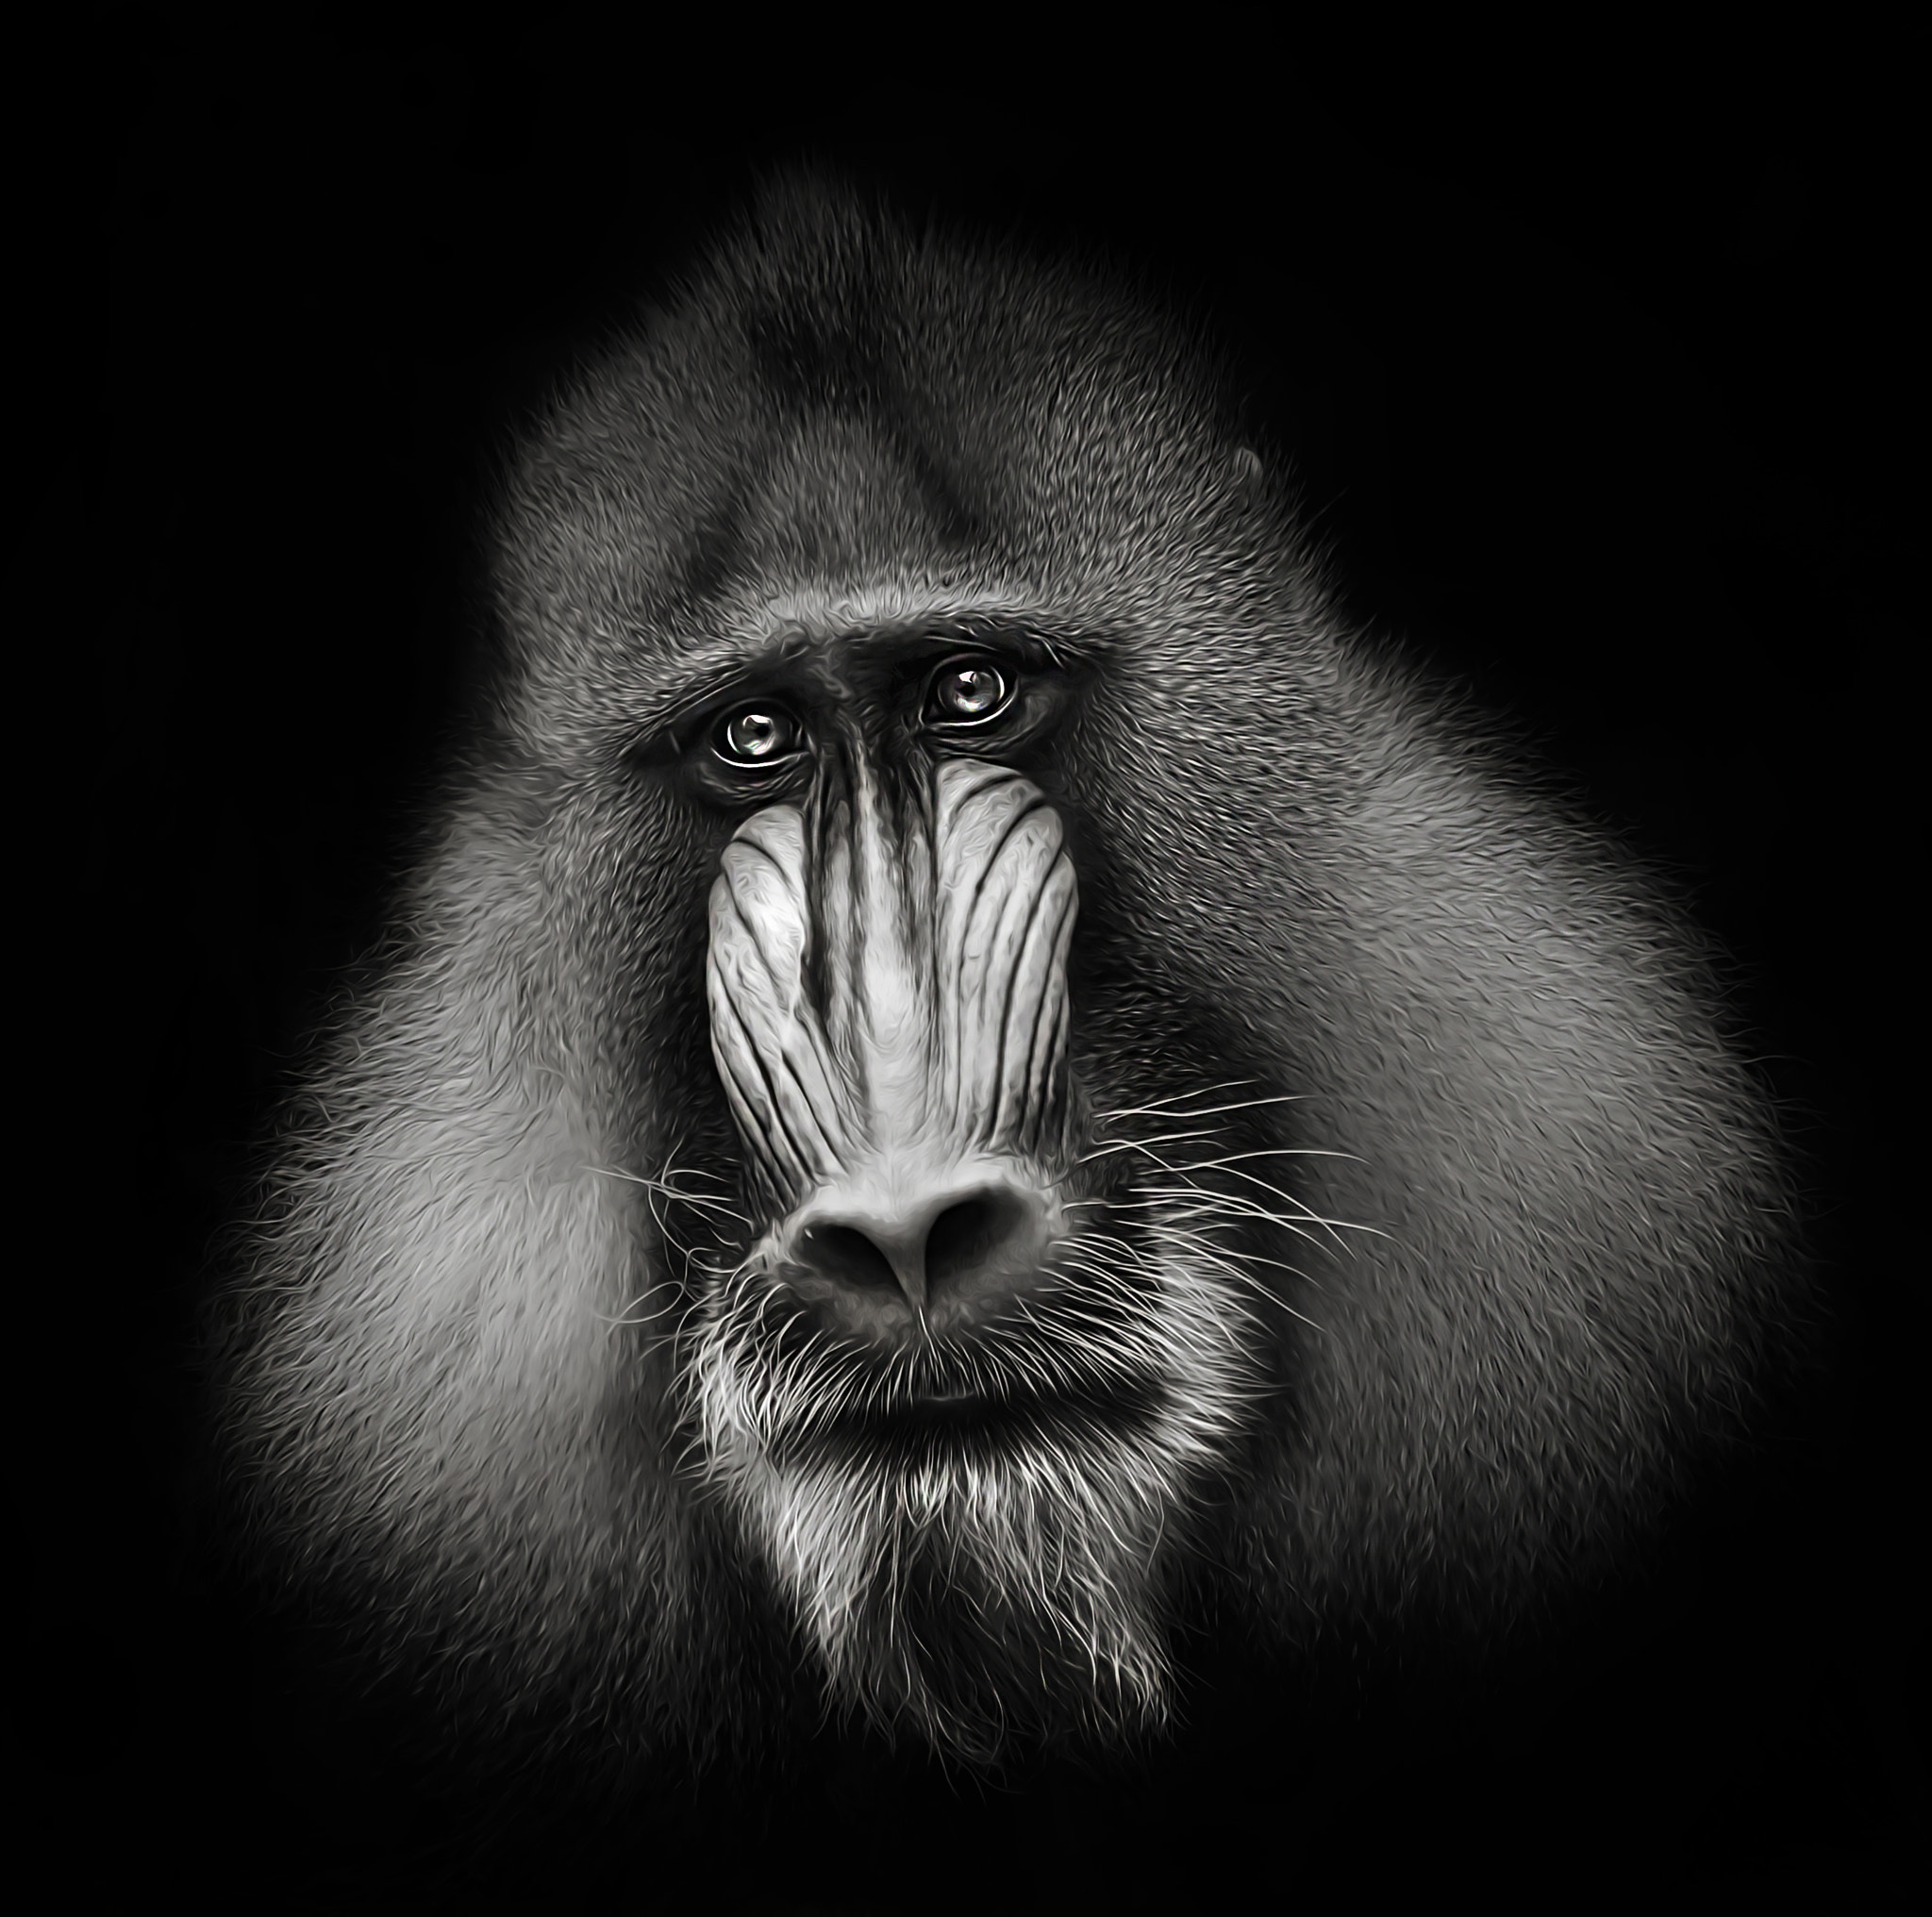 Photograph mandrill by Detlef Knapp on 500px